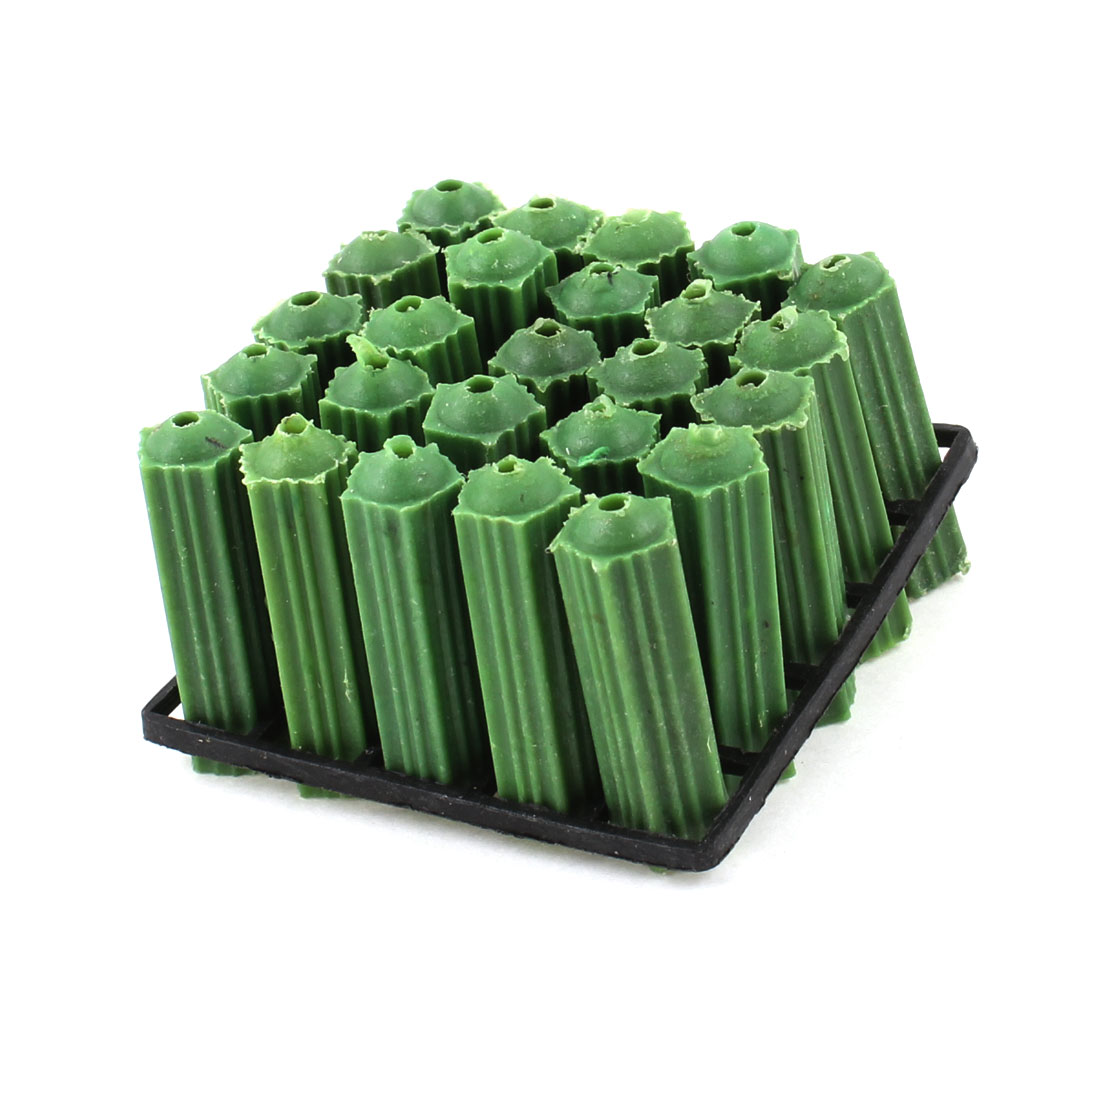 25 Pieces Masonry 8mm Green Plastic Nonslip Wall Plugs